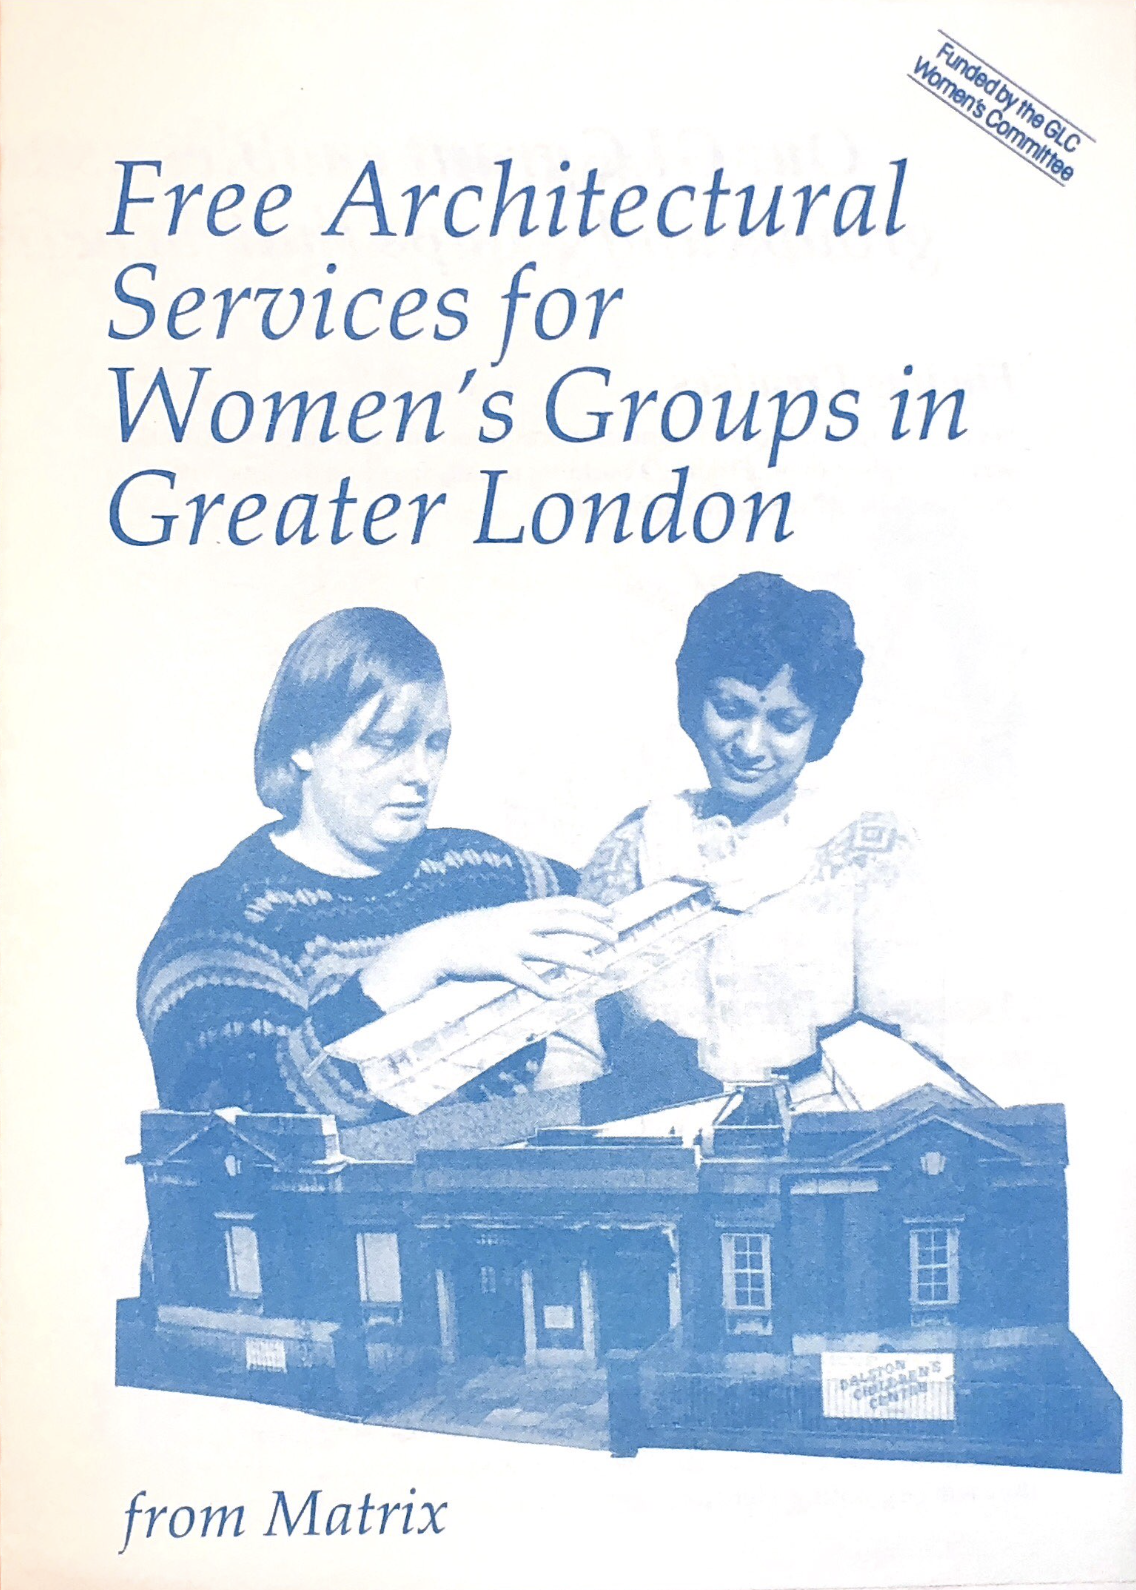 Matrix Feminist Design Co-operative leaflet, featuring cyanotype cut-out photo of two people working together on a model of Dalston Children's Centre. The person on the left holds a component of the model in their hand, while the person on the right looks down at the model and smiles. Above, the leaflet title reads 'Free Architectural Services for Women's Groups in Greater London - Funded by the GLC Women's Committee'.